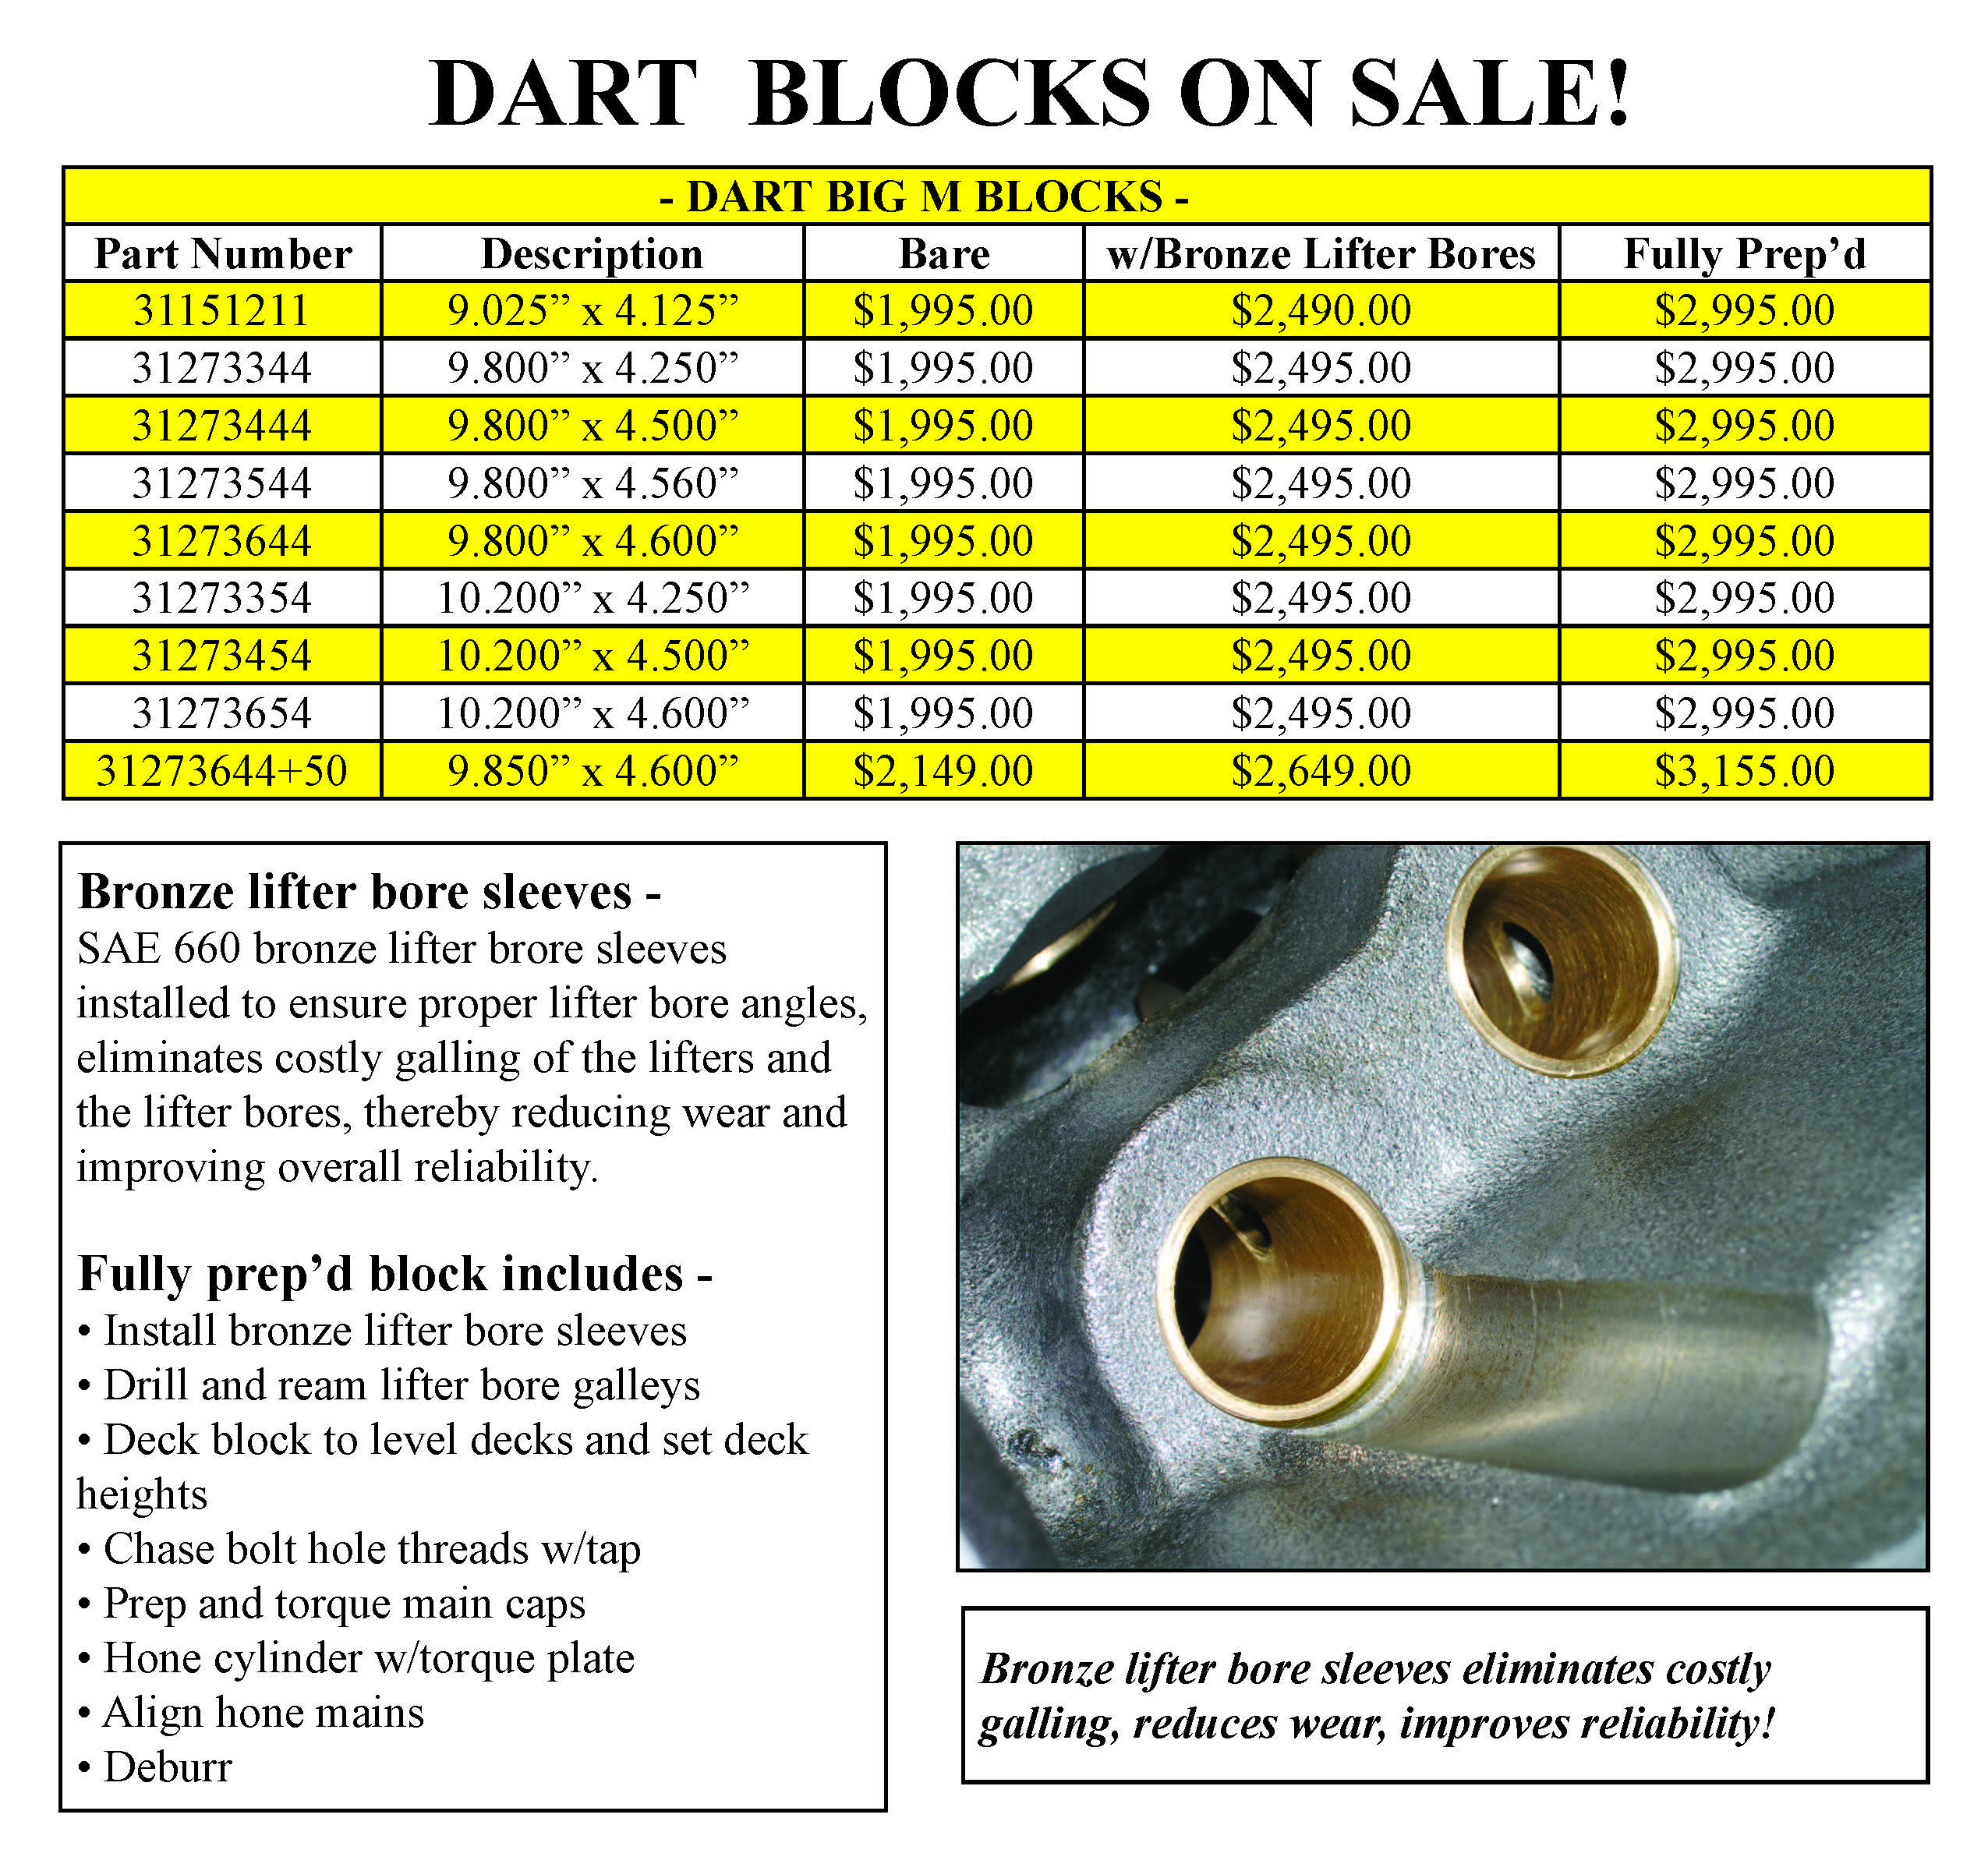 DART PREPPED BIG M BLOCKS2